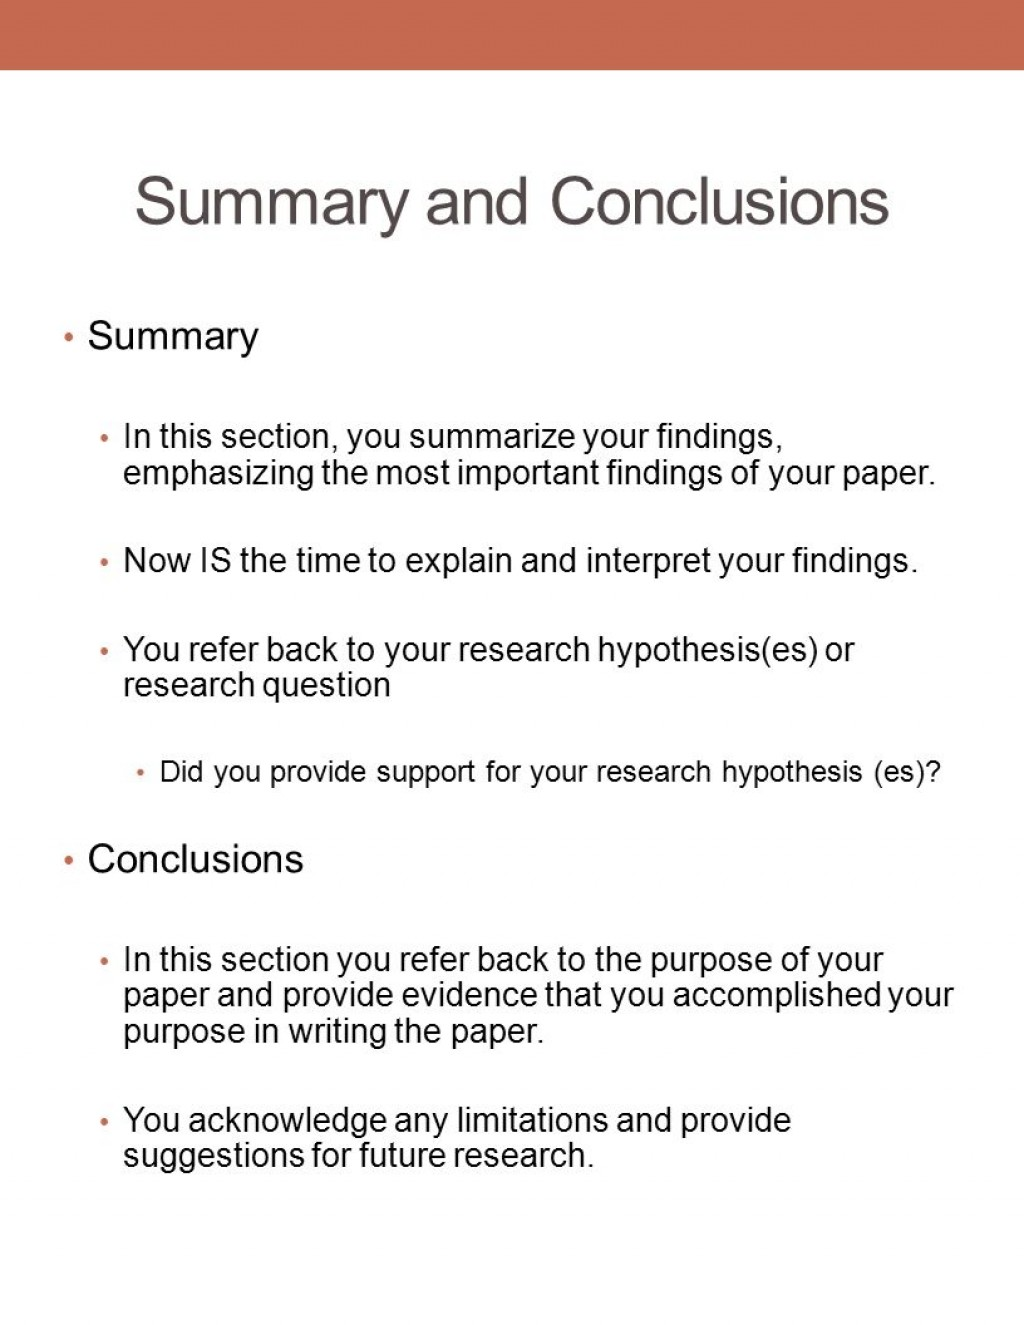 009 What Is The Purpose Of Research Paper Slide 12 Impressive A Conducting Critiquing Process Writing Large